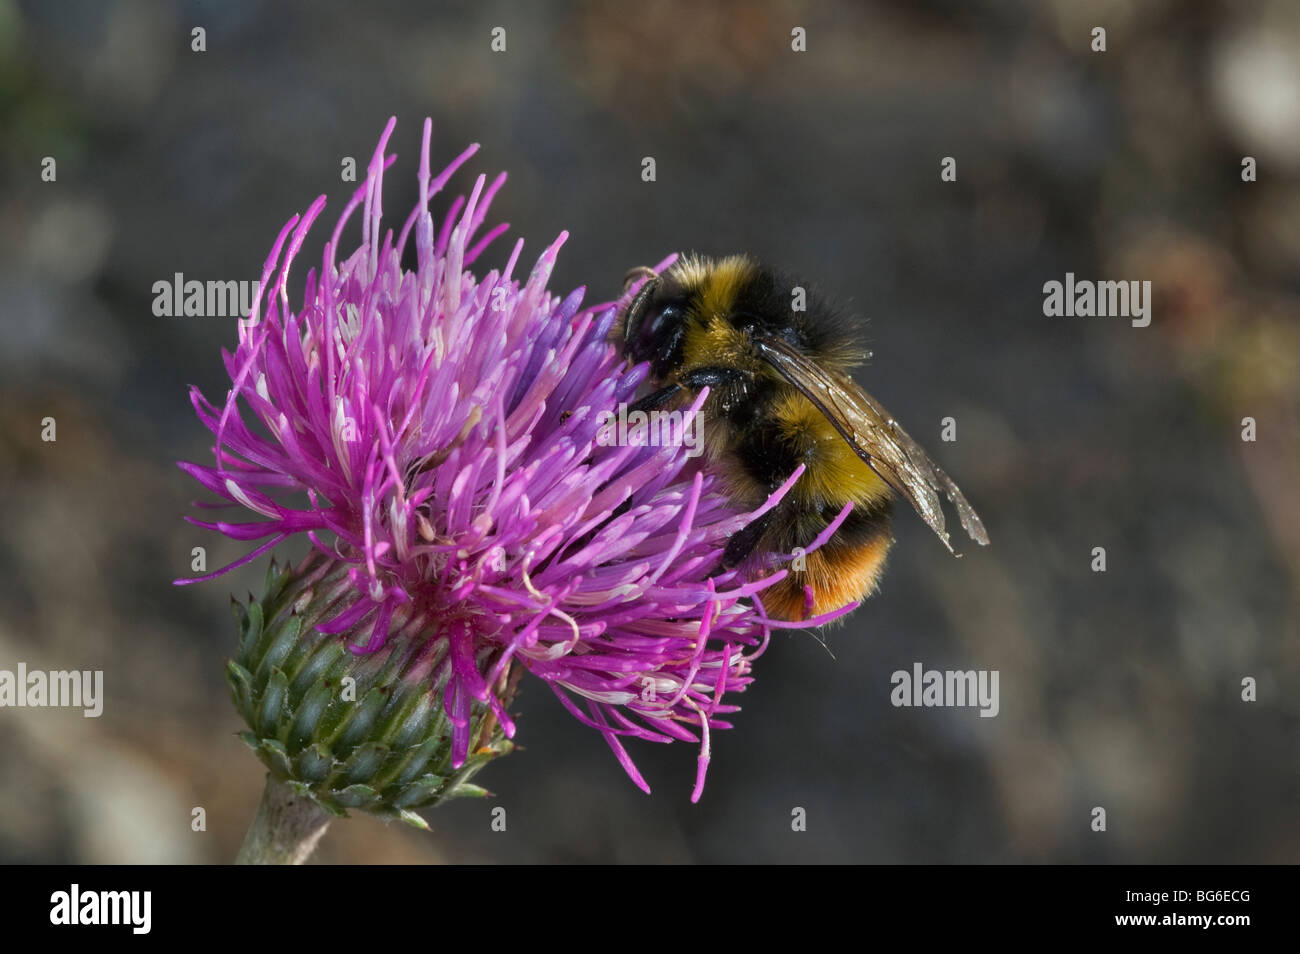 Italy, Piedmont, Oulx (To), a wild bee on a flower - Stock Image